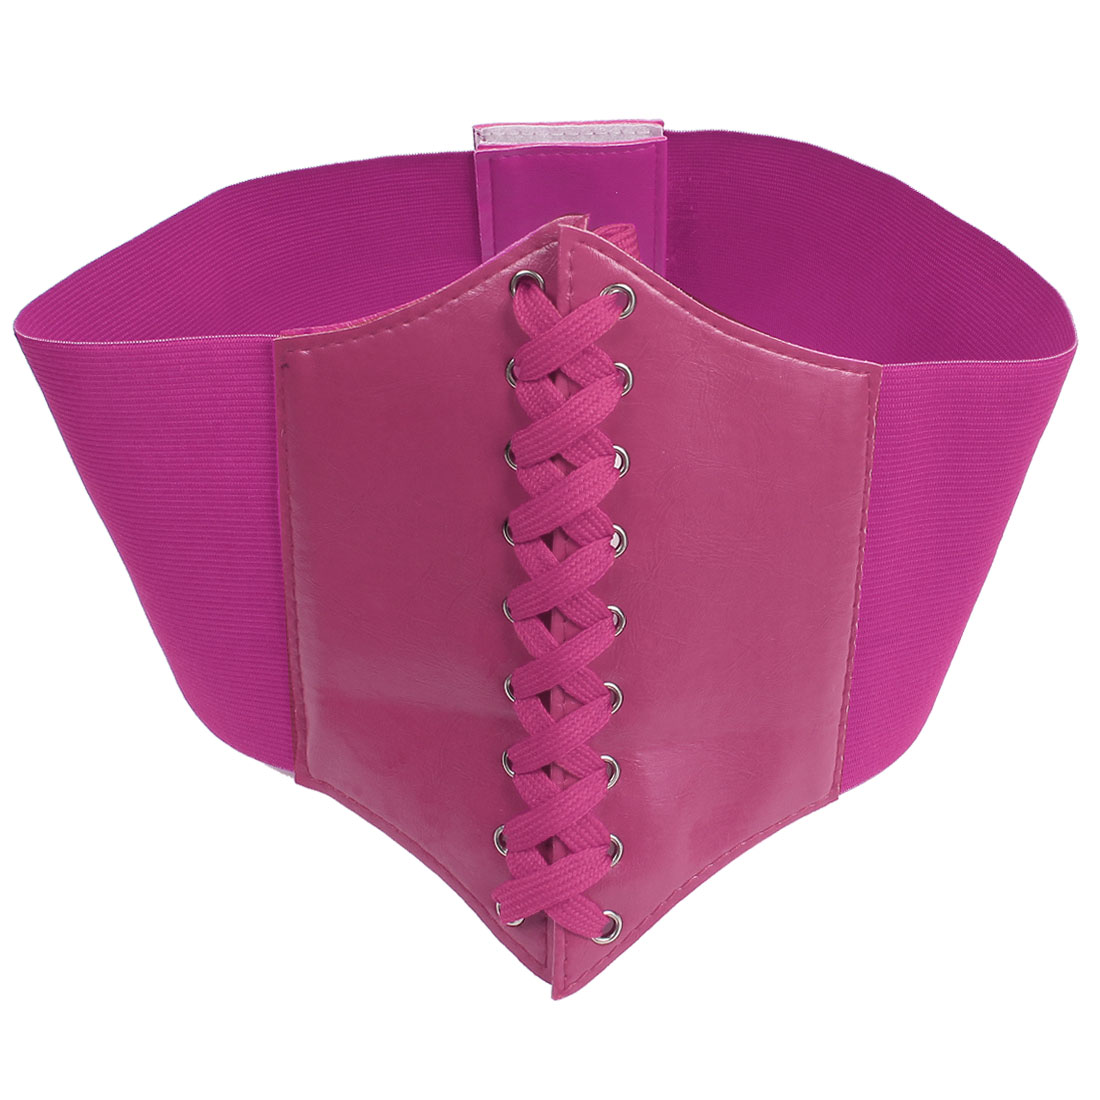 Faux Leather Width Stretchy Lace Up Waist Corset Belt for Women